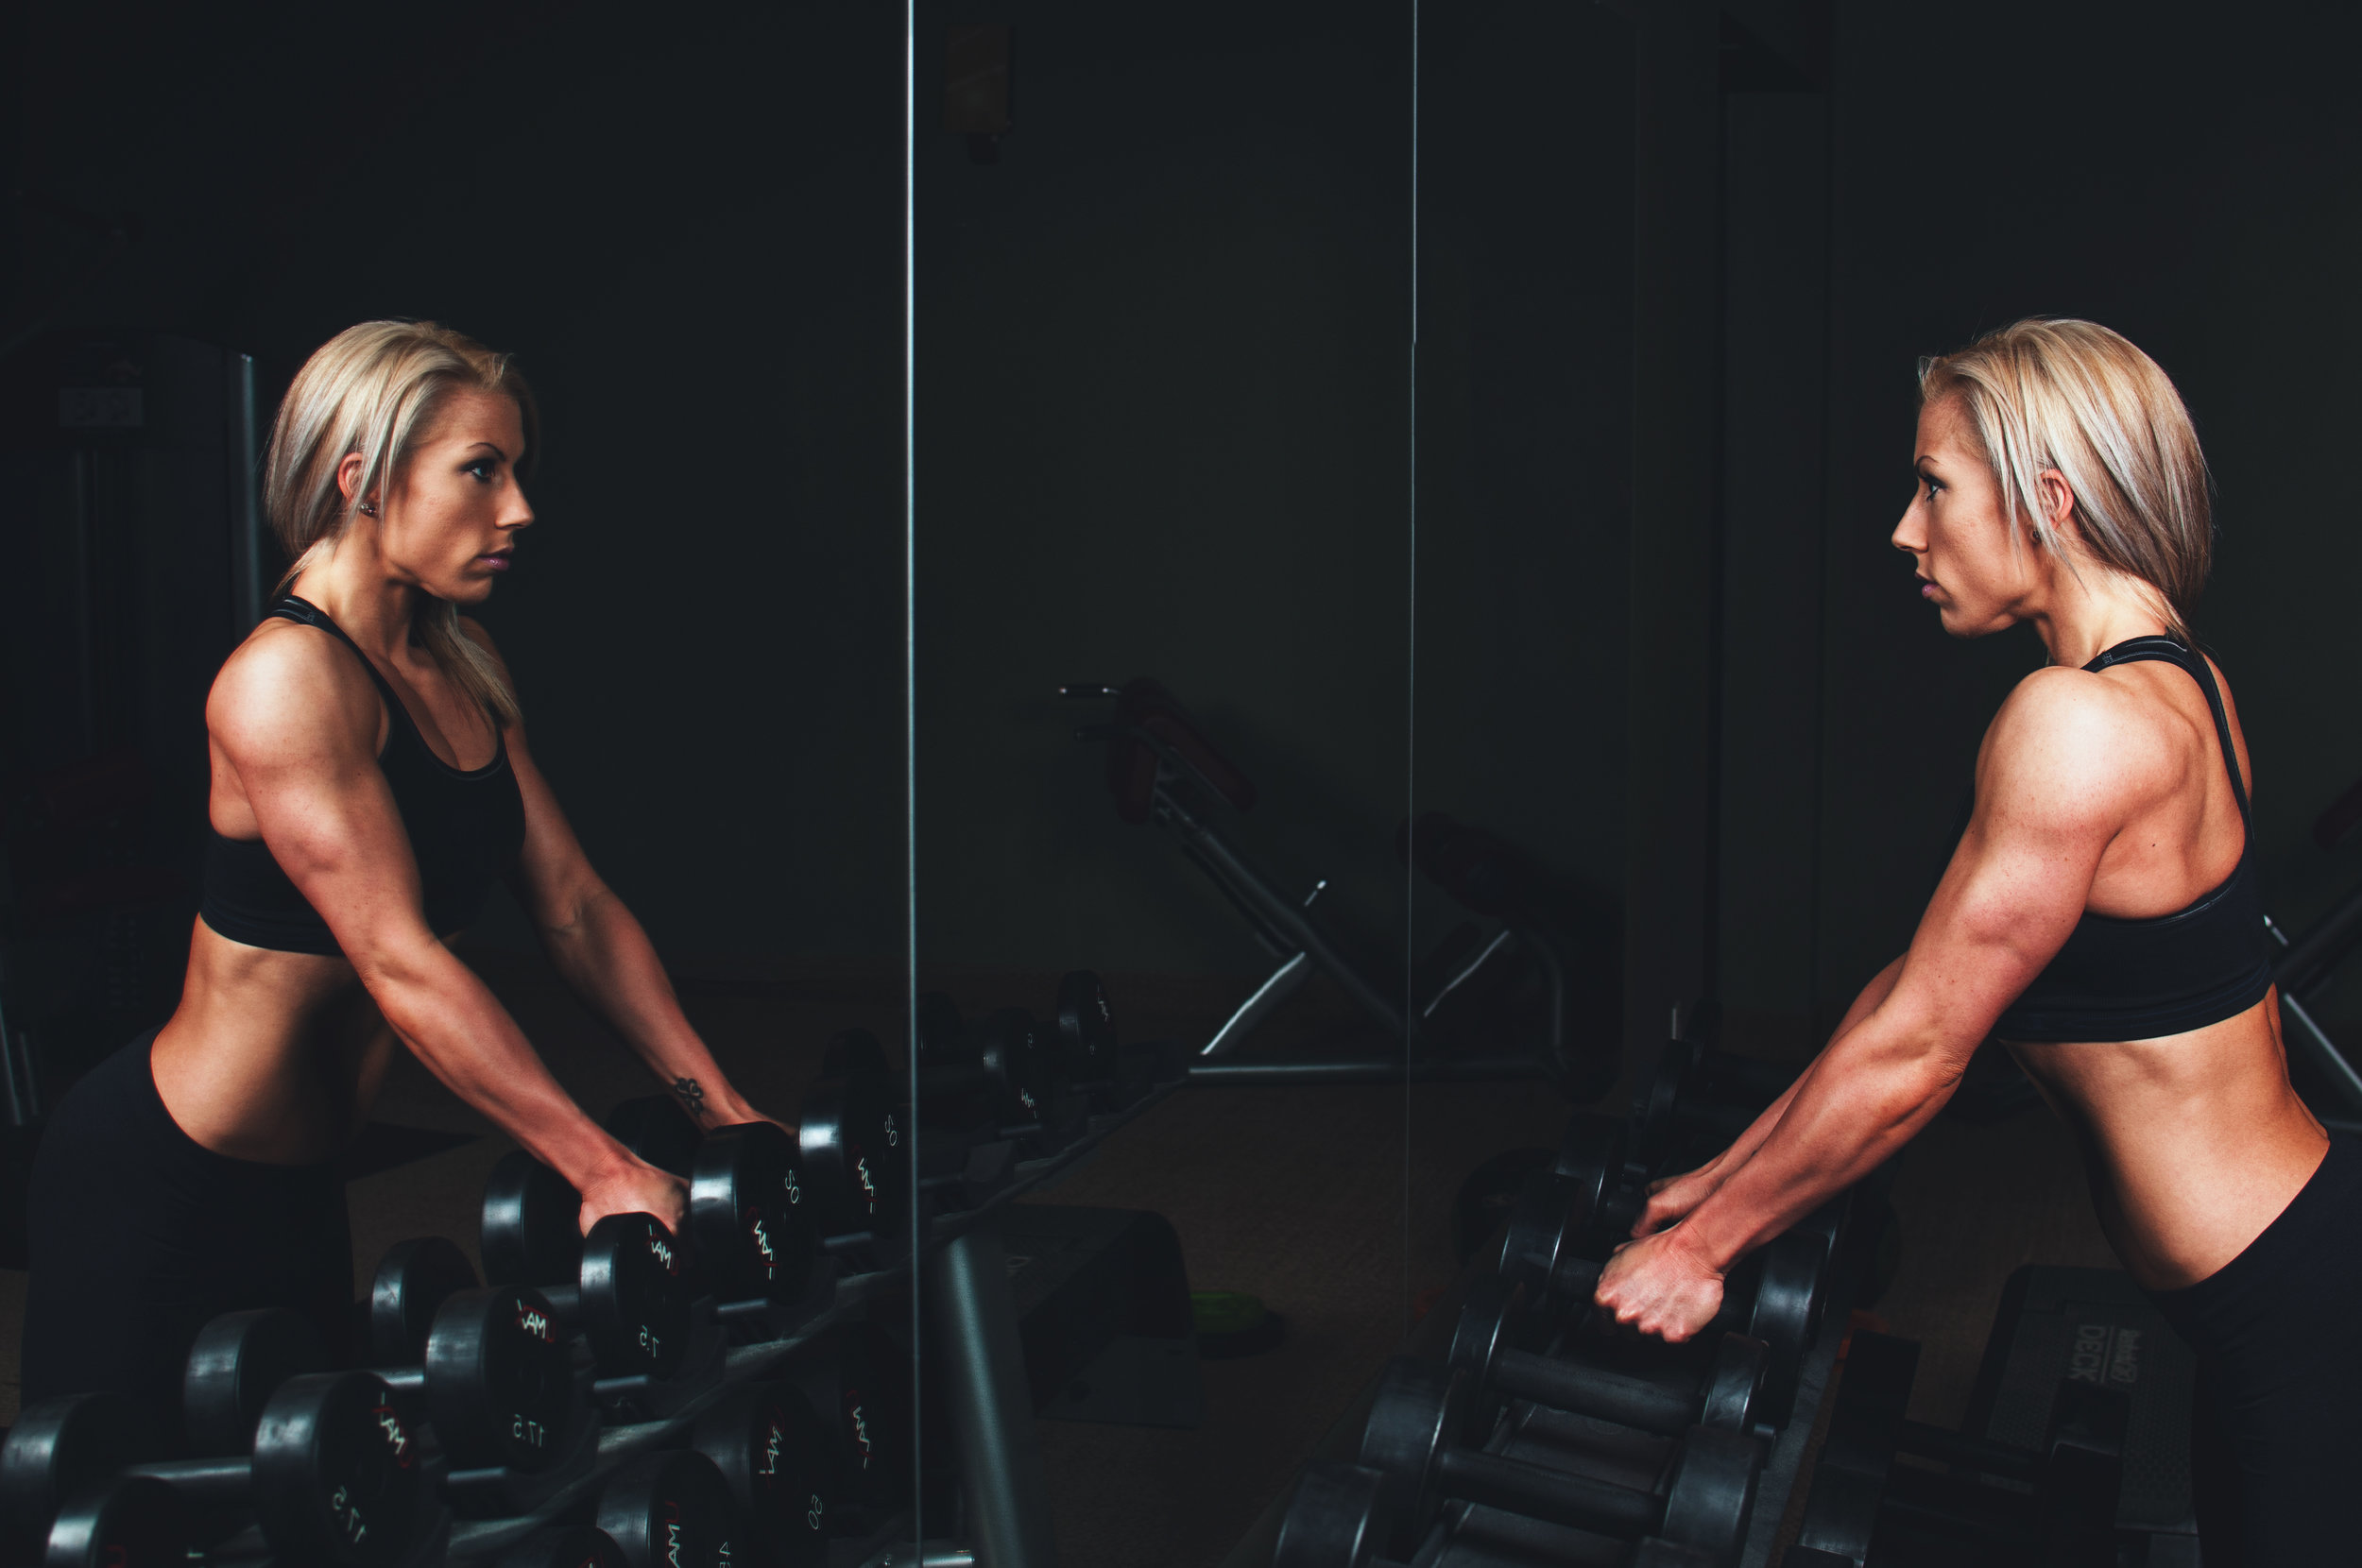 AESTHETICS - Whether it's for your next beach vacation or for a wedding this summer, looking your best takes more than just eating less and moving more. Learn how to transform your body and stay motivated.